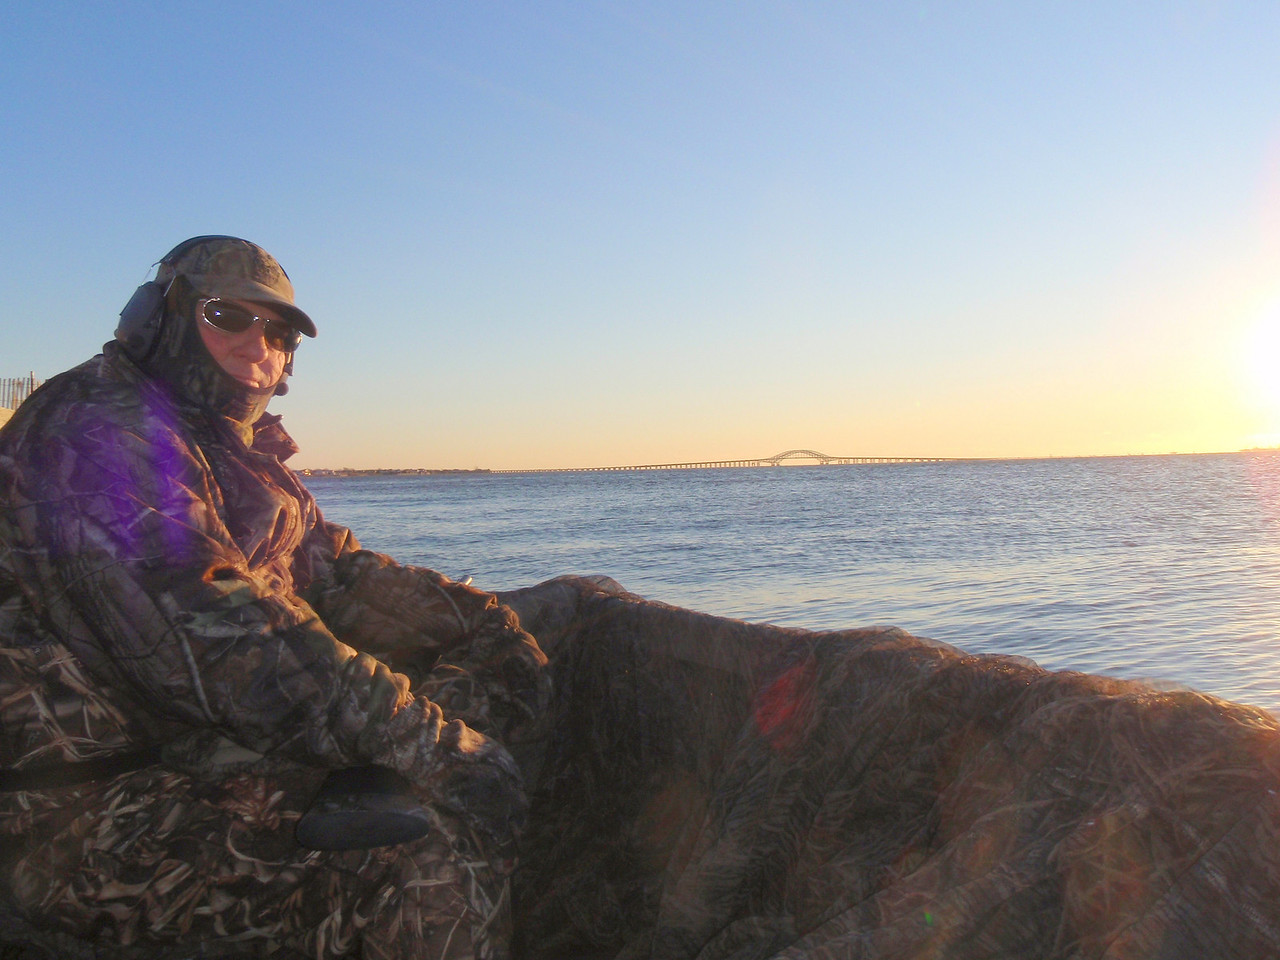 Jim Conte in the photo and I did a couple of shoots and did pretty well with broadbill and brant. The weather has gotten cold but good for hunting.